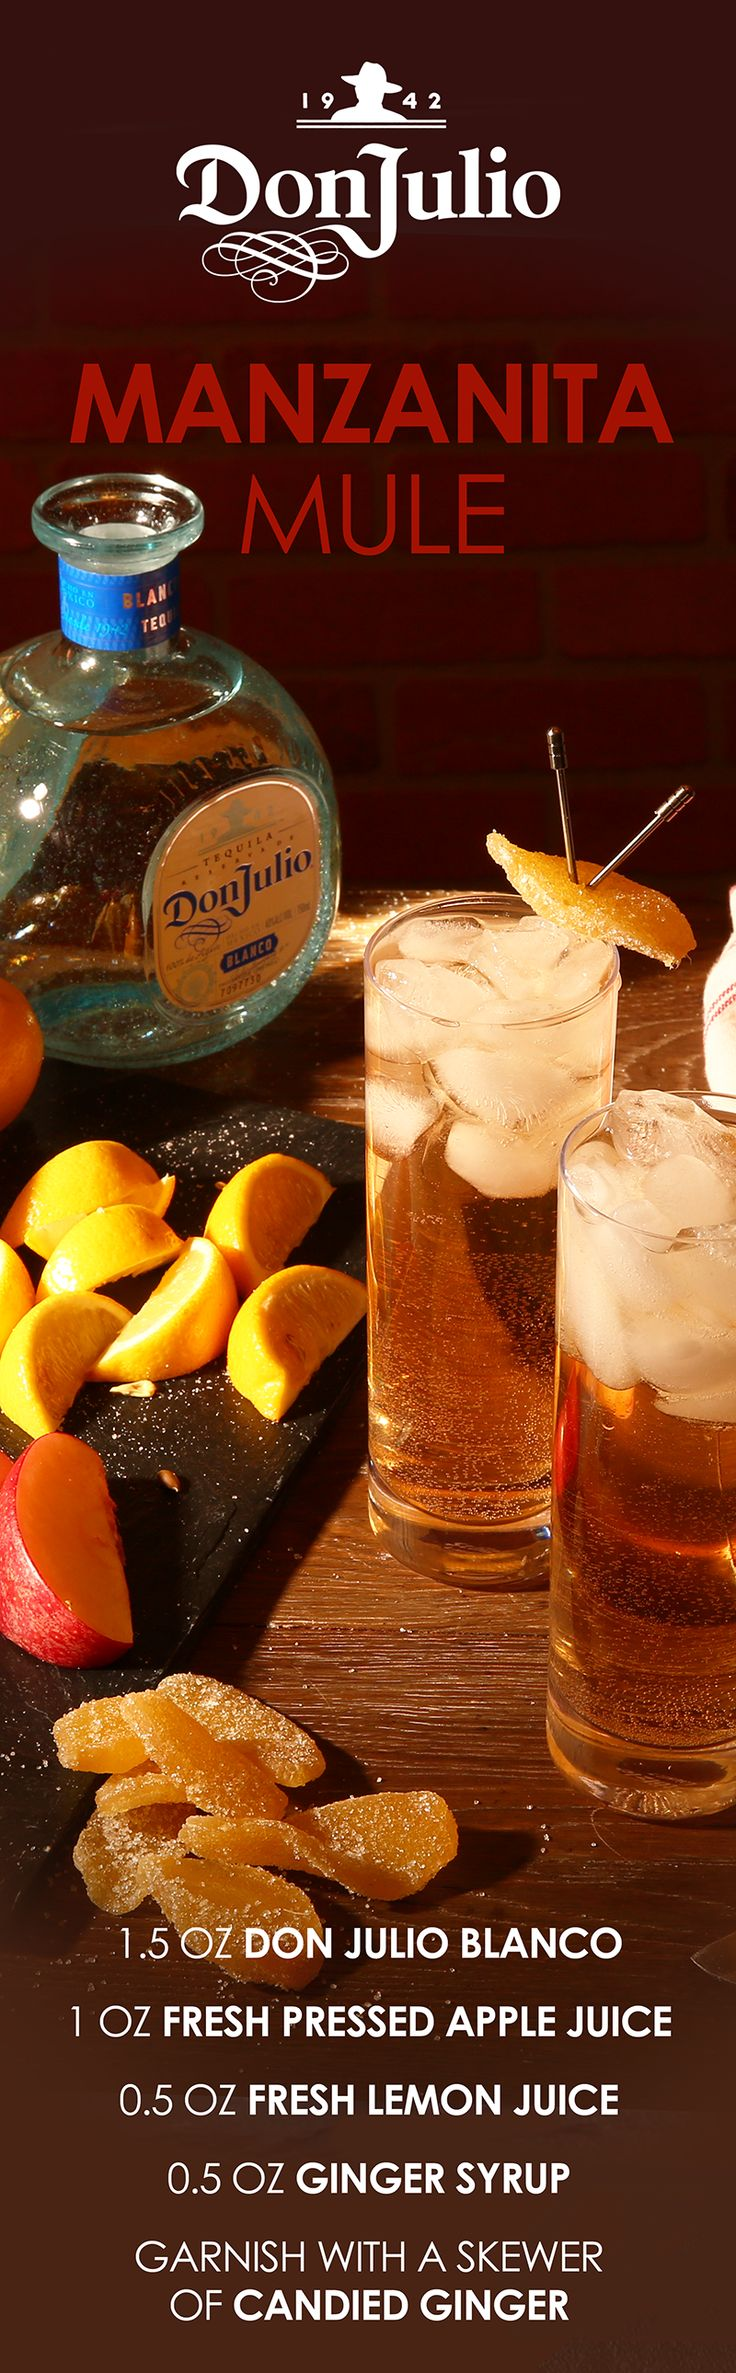 For a twist on a classic mule recipe this holiday season, try the crisp flavor of the Manzanita Mule. Combine 1½ oz Don Julio Blanco Tequila, 1 oz of fresh pressed apple juice, and ½ oz of lemon juice into a cocktail shaker with ice. Shake well, strain into a Collins glass over ice and top with ginger beer. Garnish with a skewer of candied ginger and enjoy with friends and family!